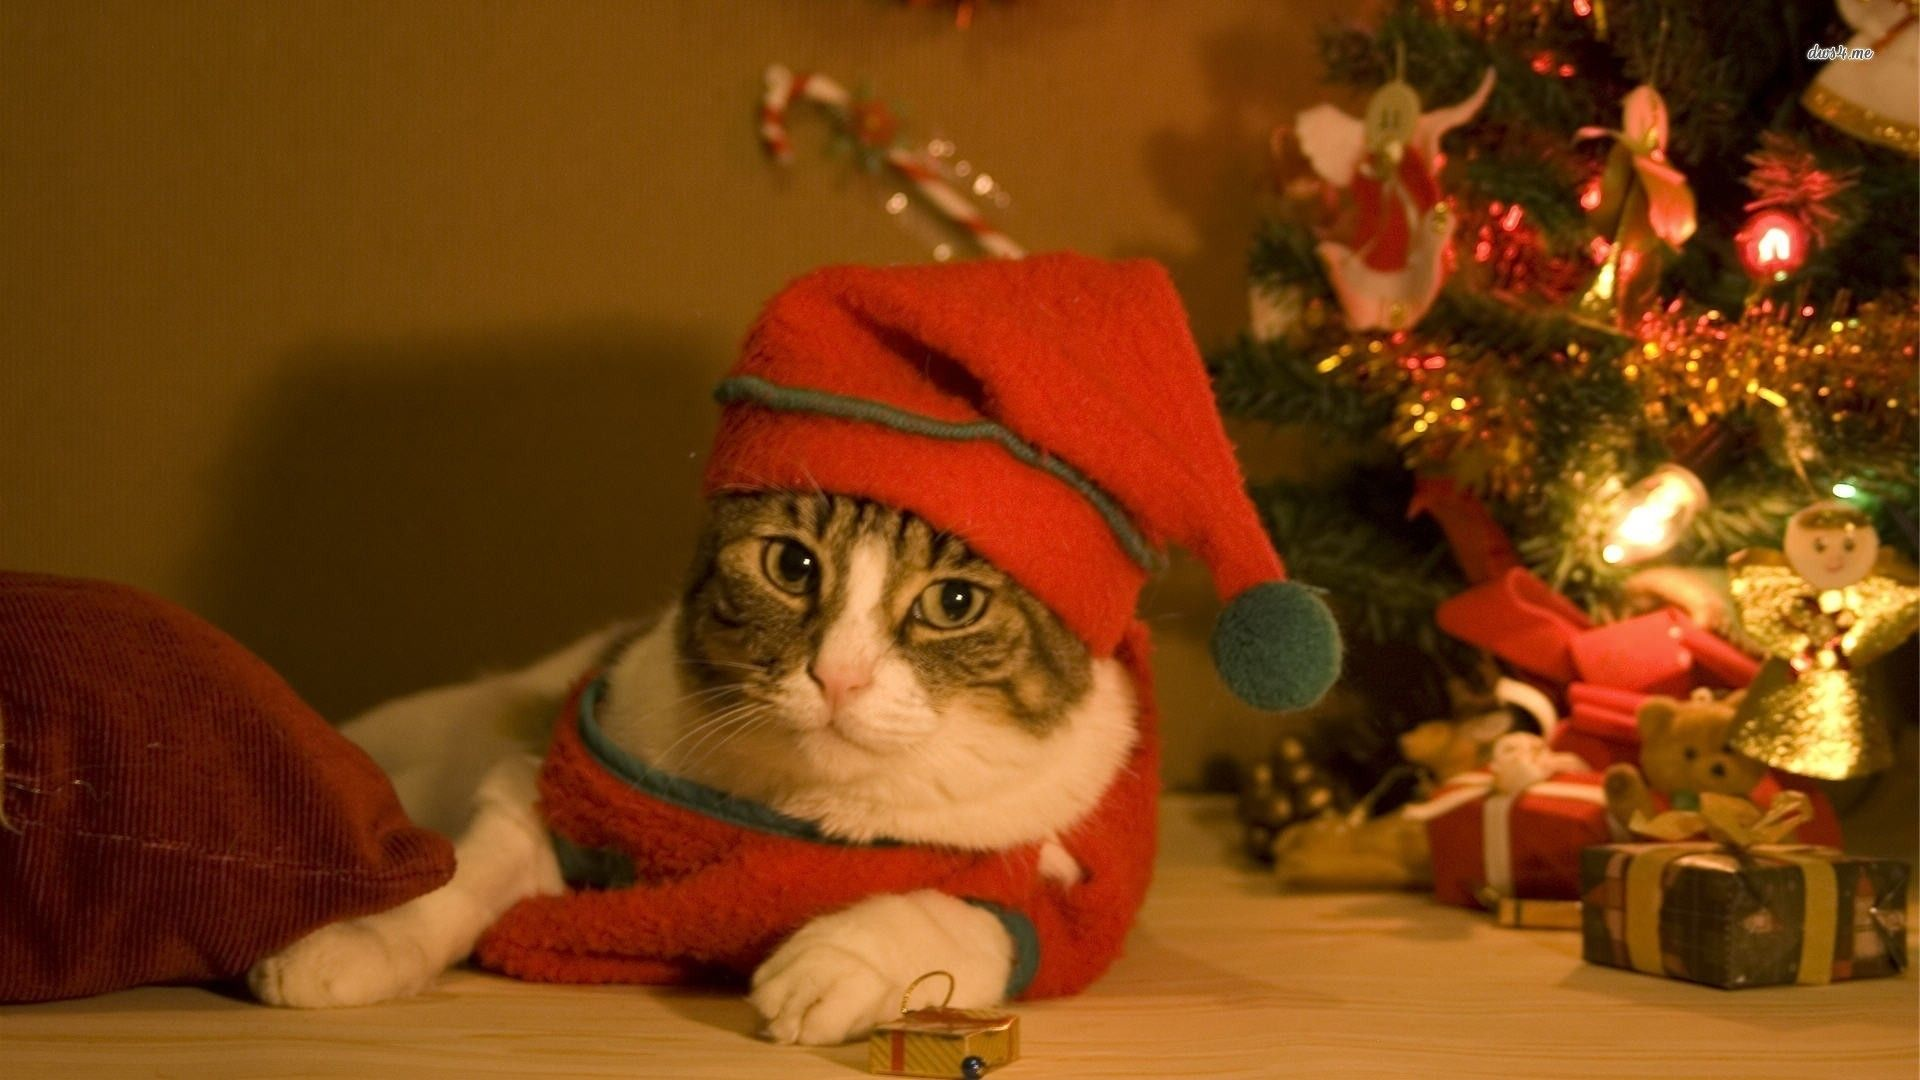 52 Best Free Christmas Animal Wallpapers Wallpaperaccess